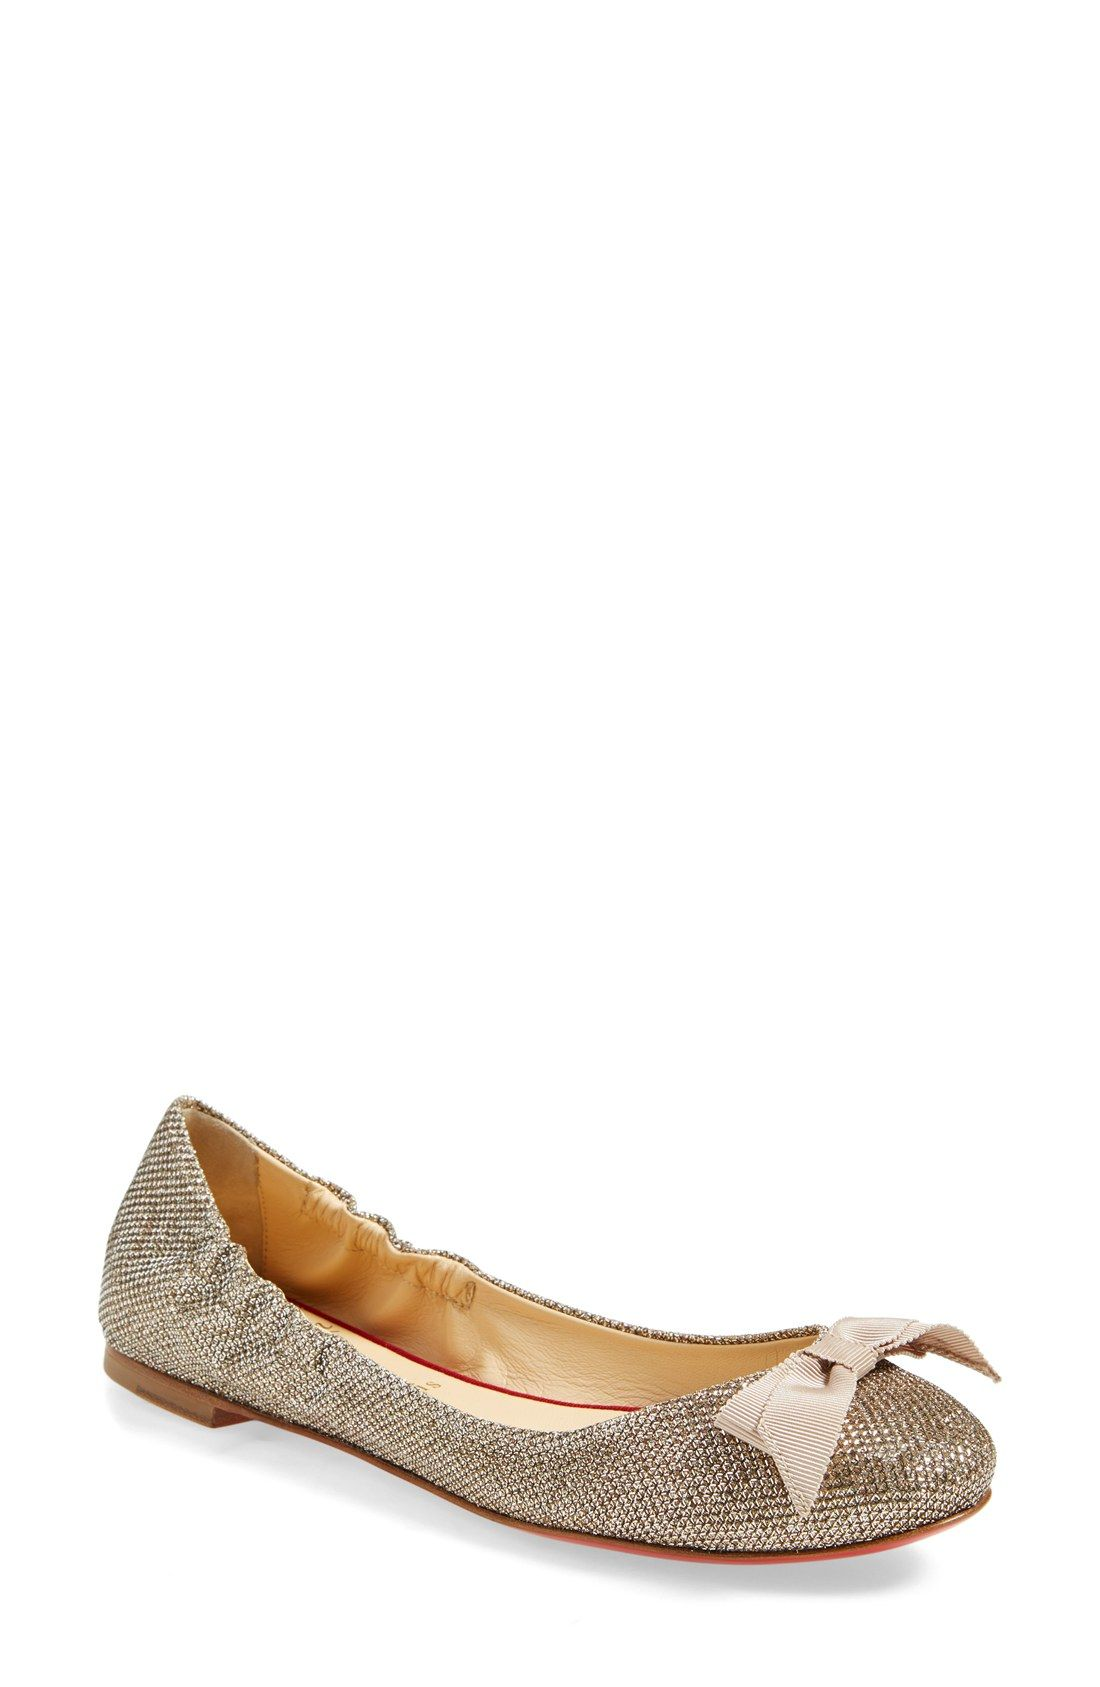 wholesale dealer 9864a d42d1 Christian Louboutin 'Gloriana' Ballet Flat | I'd Wear it ...